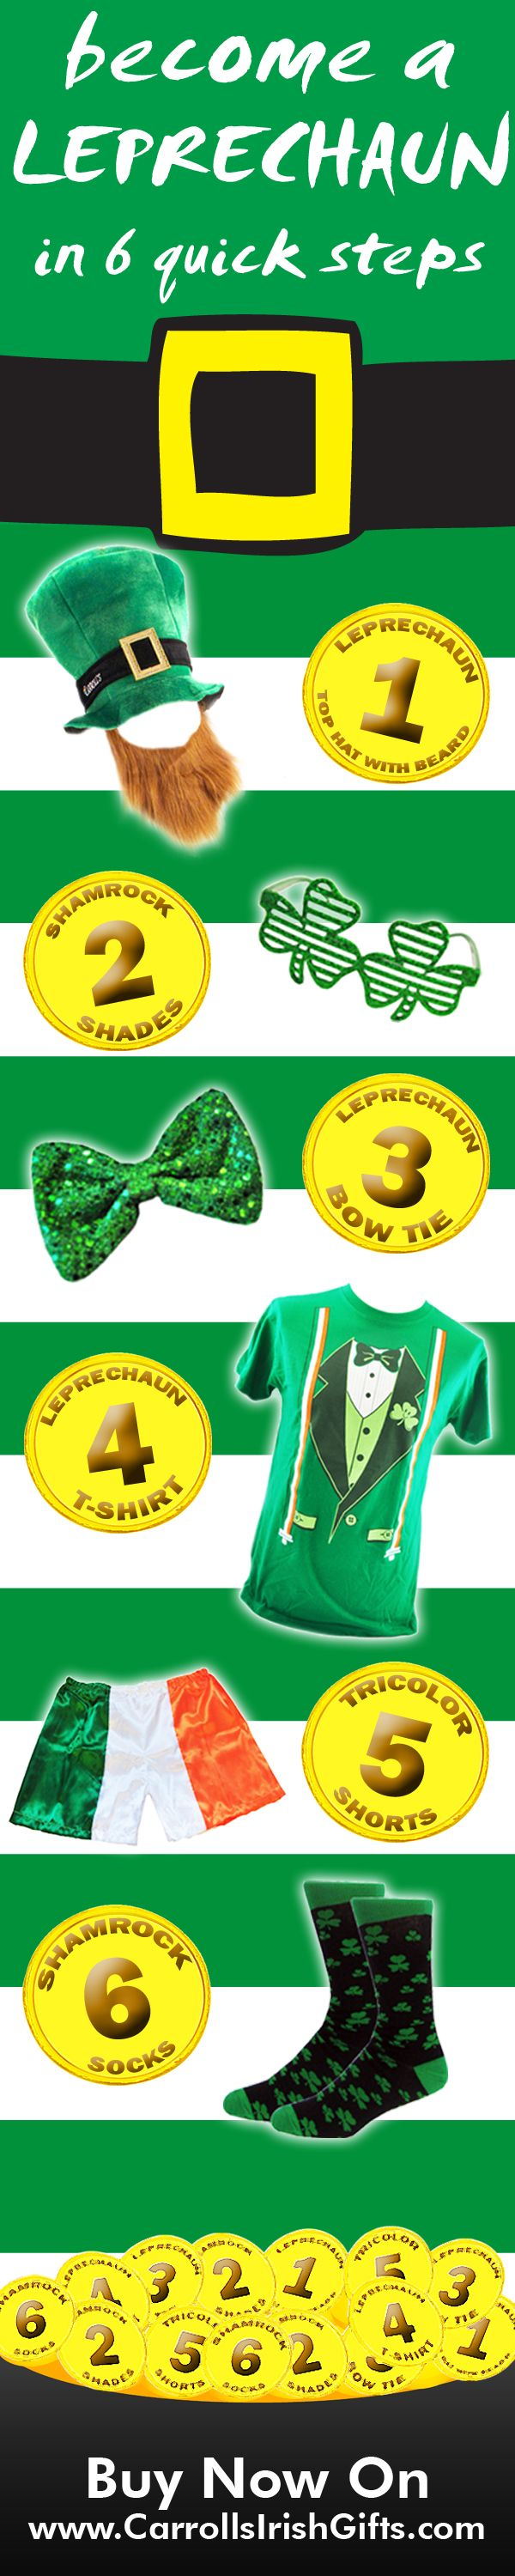 The Leprechaun is a hugely popular Irish icon. To celebrate St. Patrick's Day, and Irishness, we have created a fun 6 step guide to becoming a Leprechaun!